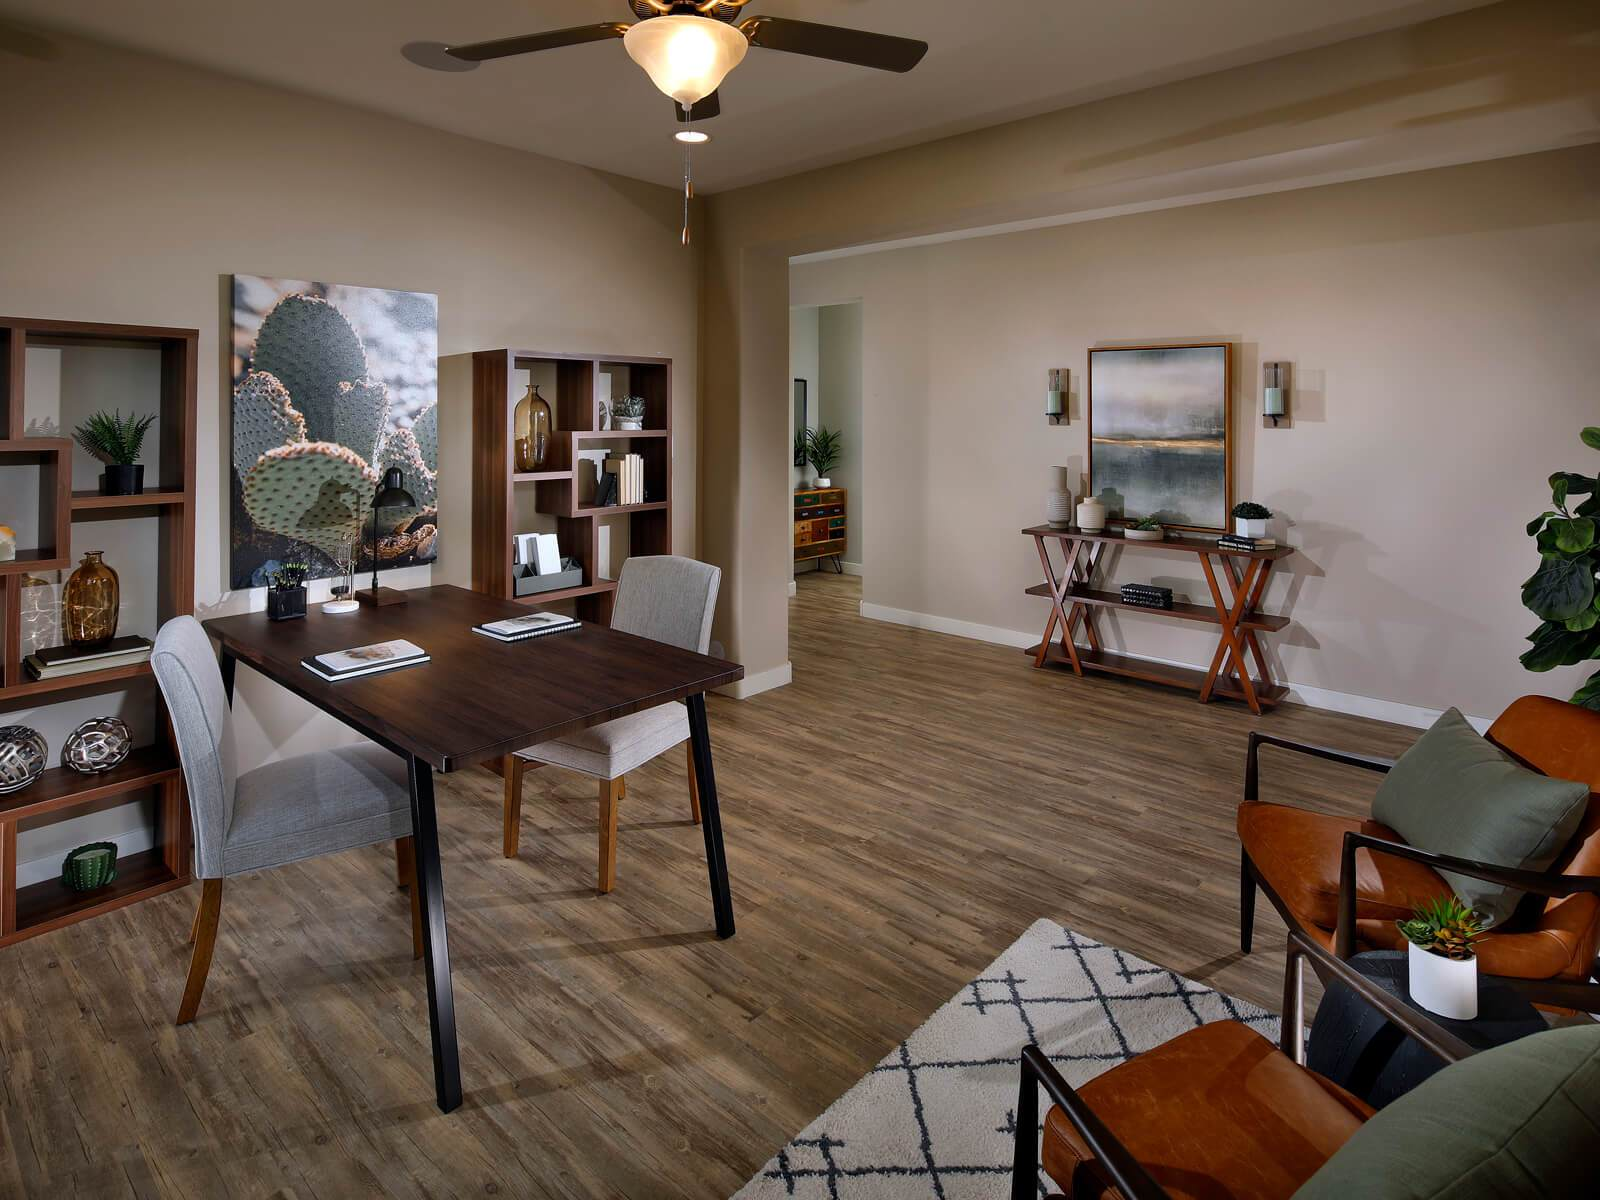 Living Area featured in the Promenade By Meritage Homes in Tucson, AZ